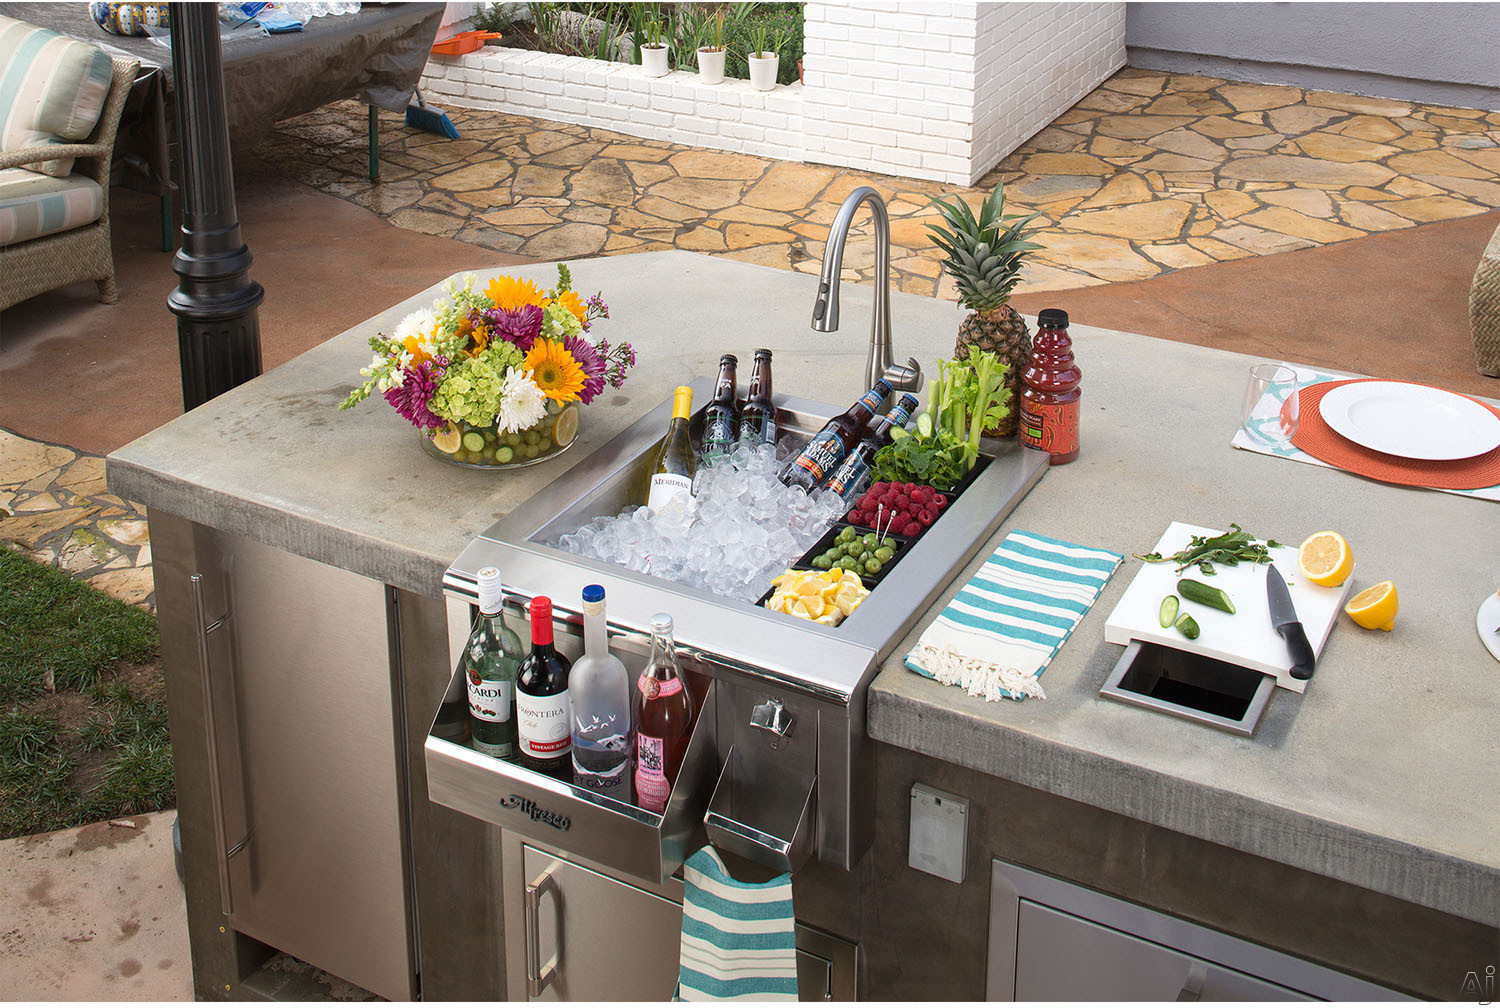 Alfresco ADT24 24 Inch Built in Beverage Center with Insulated Ice Compartment Bottle Bins Front Speedrail and Stainless Steel Construction